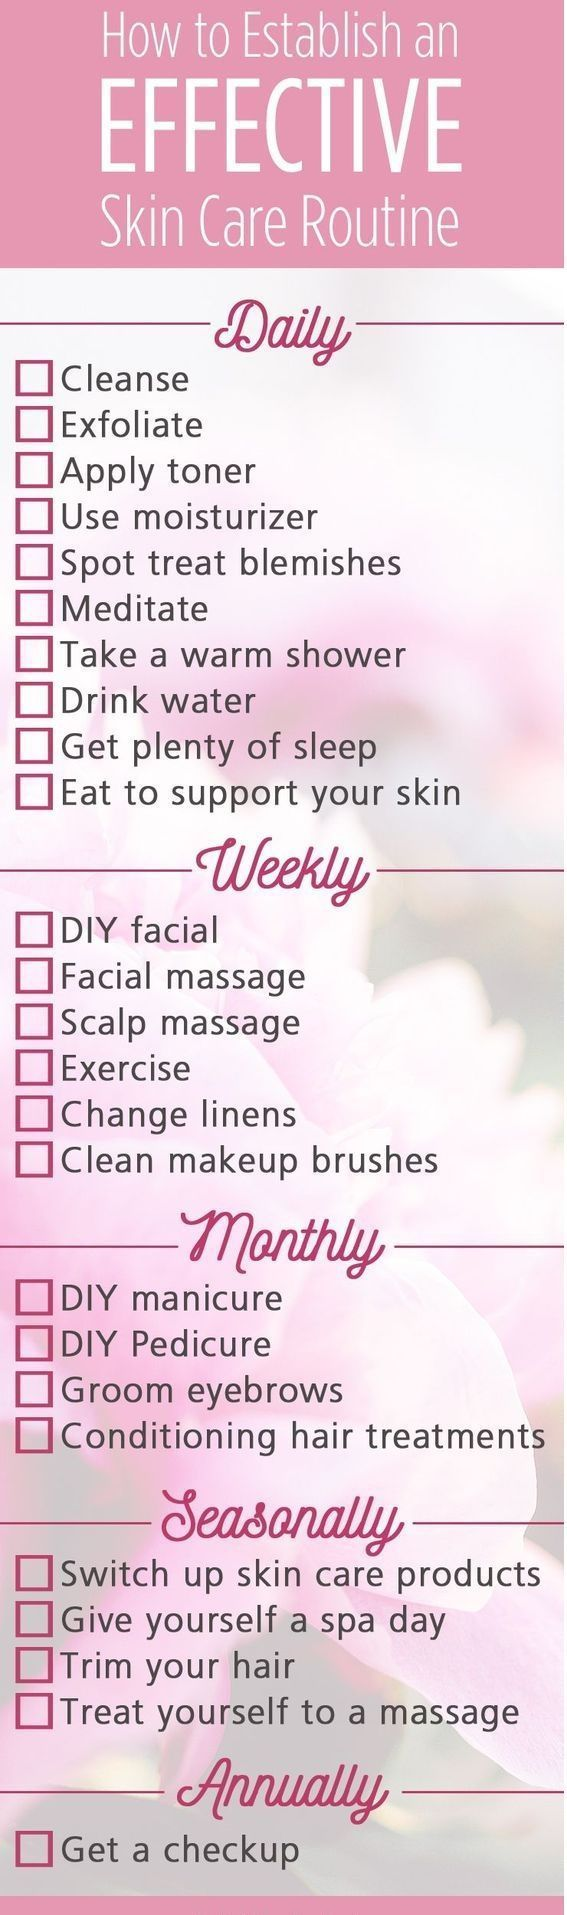 Skin Care Routine Steps Daily Skin Care Routine At Home Skin Care Routine For Acne Skin C Daily Skin Care Routine Skin Care Routine Steps Skin Care Remedies